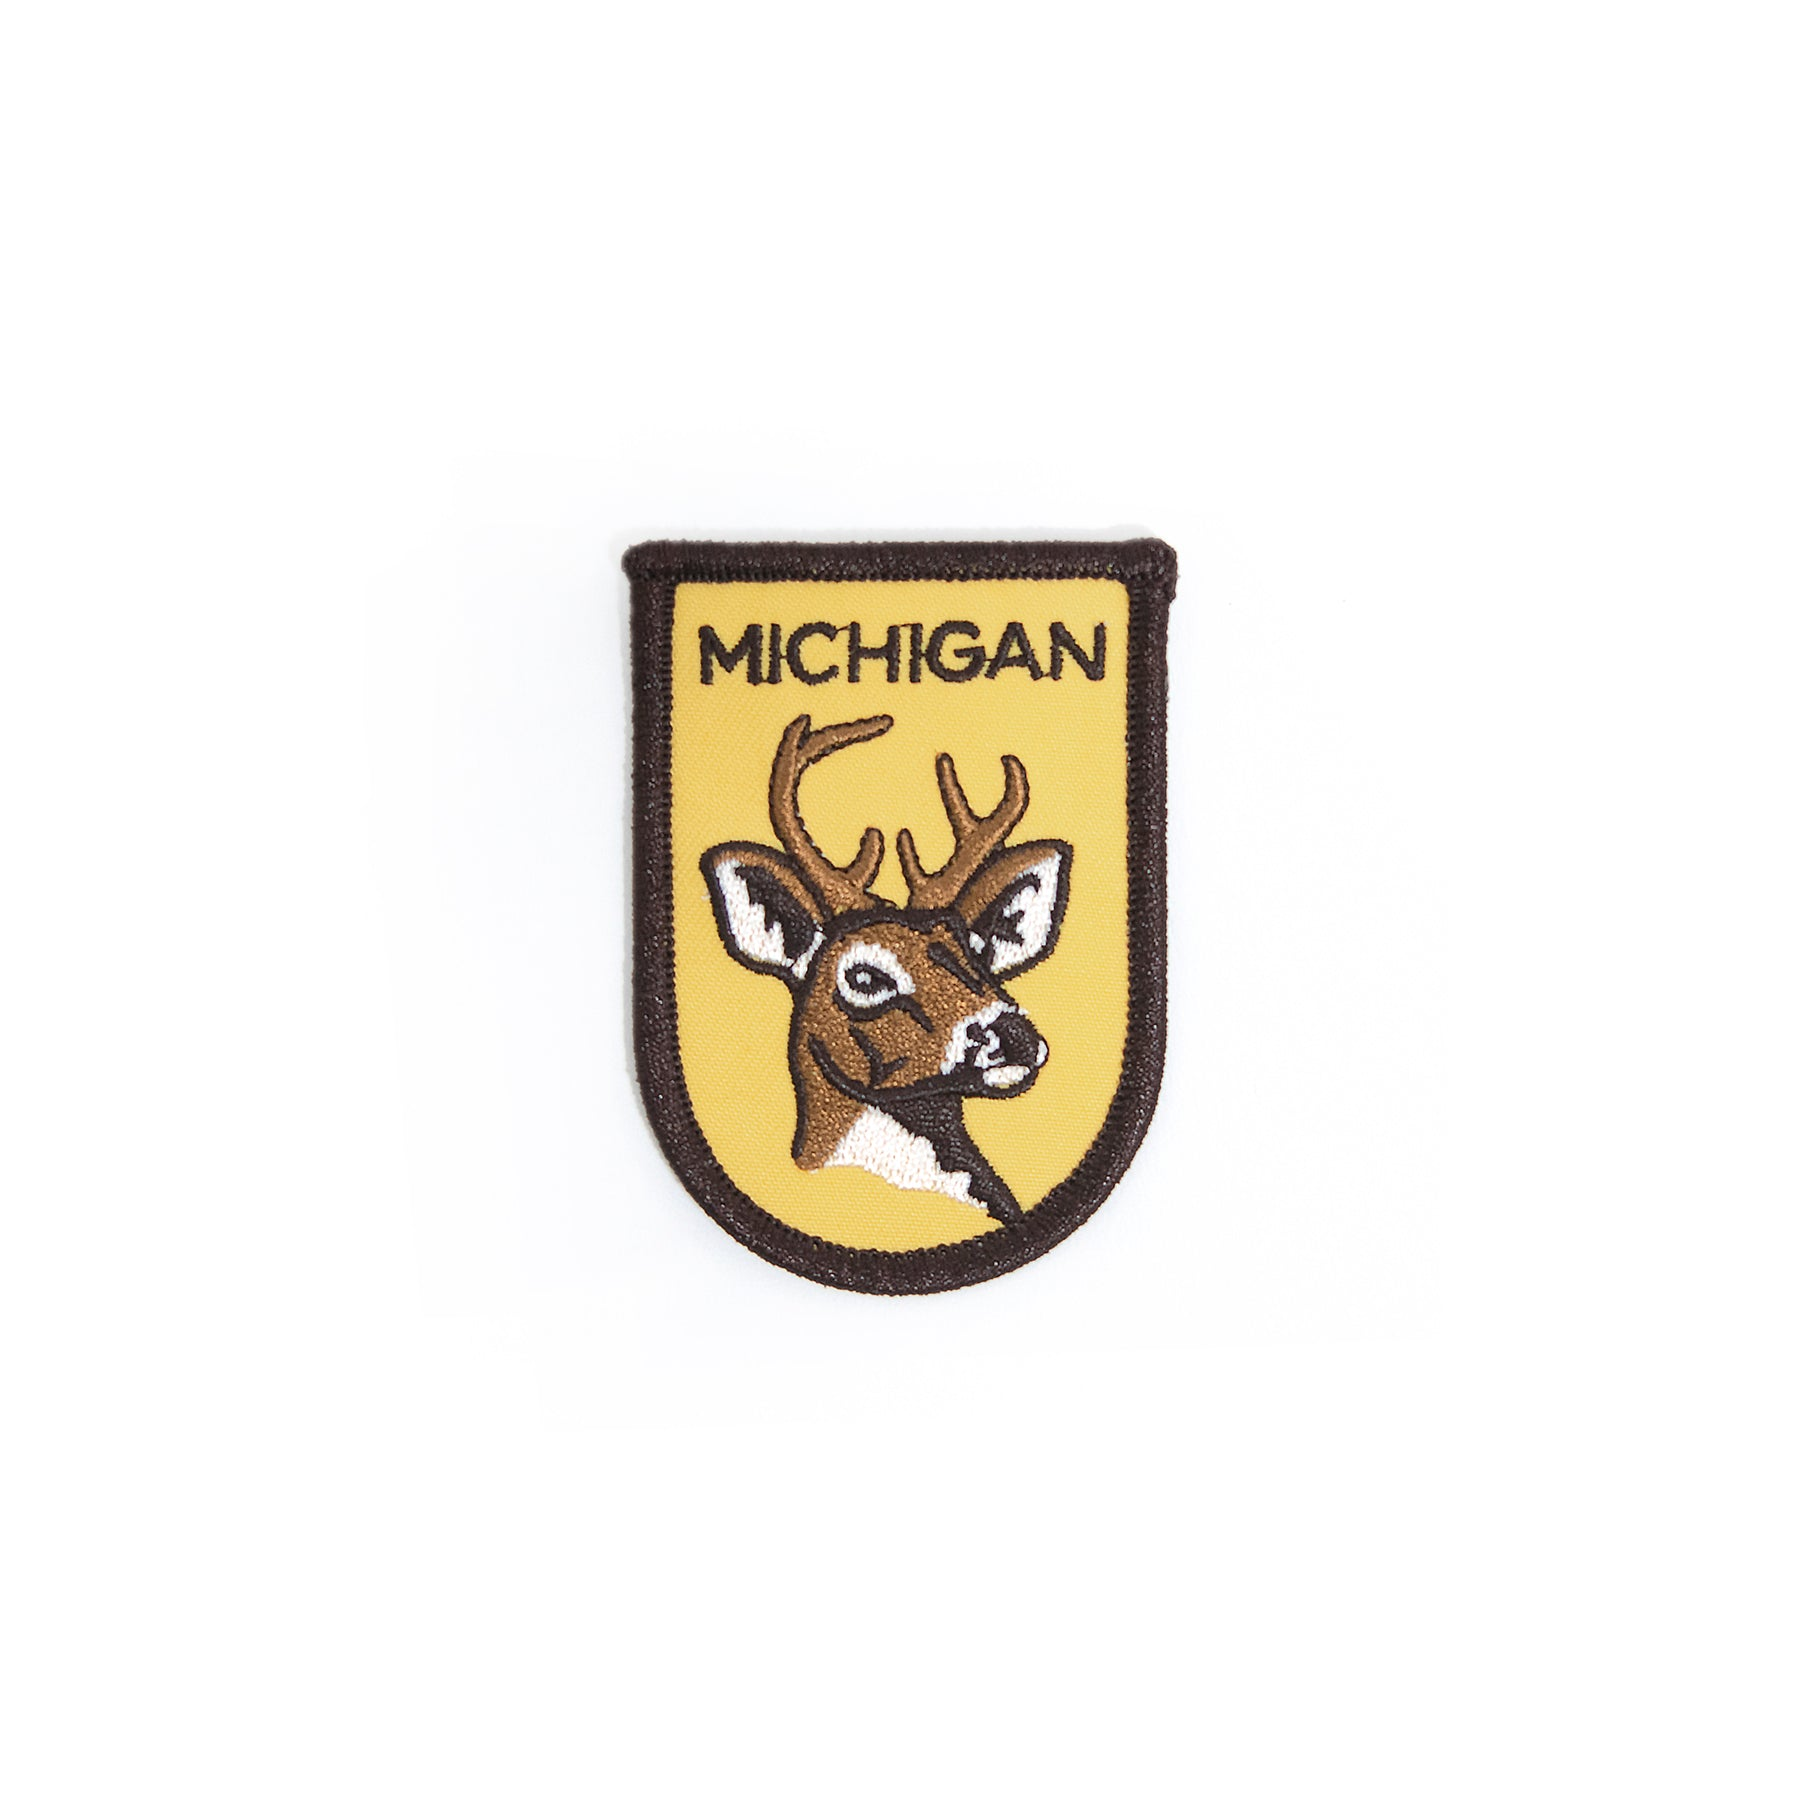 Michigan Deer Head Patch